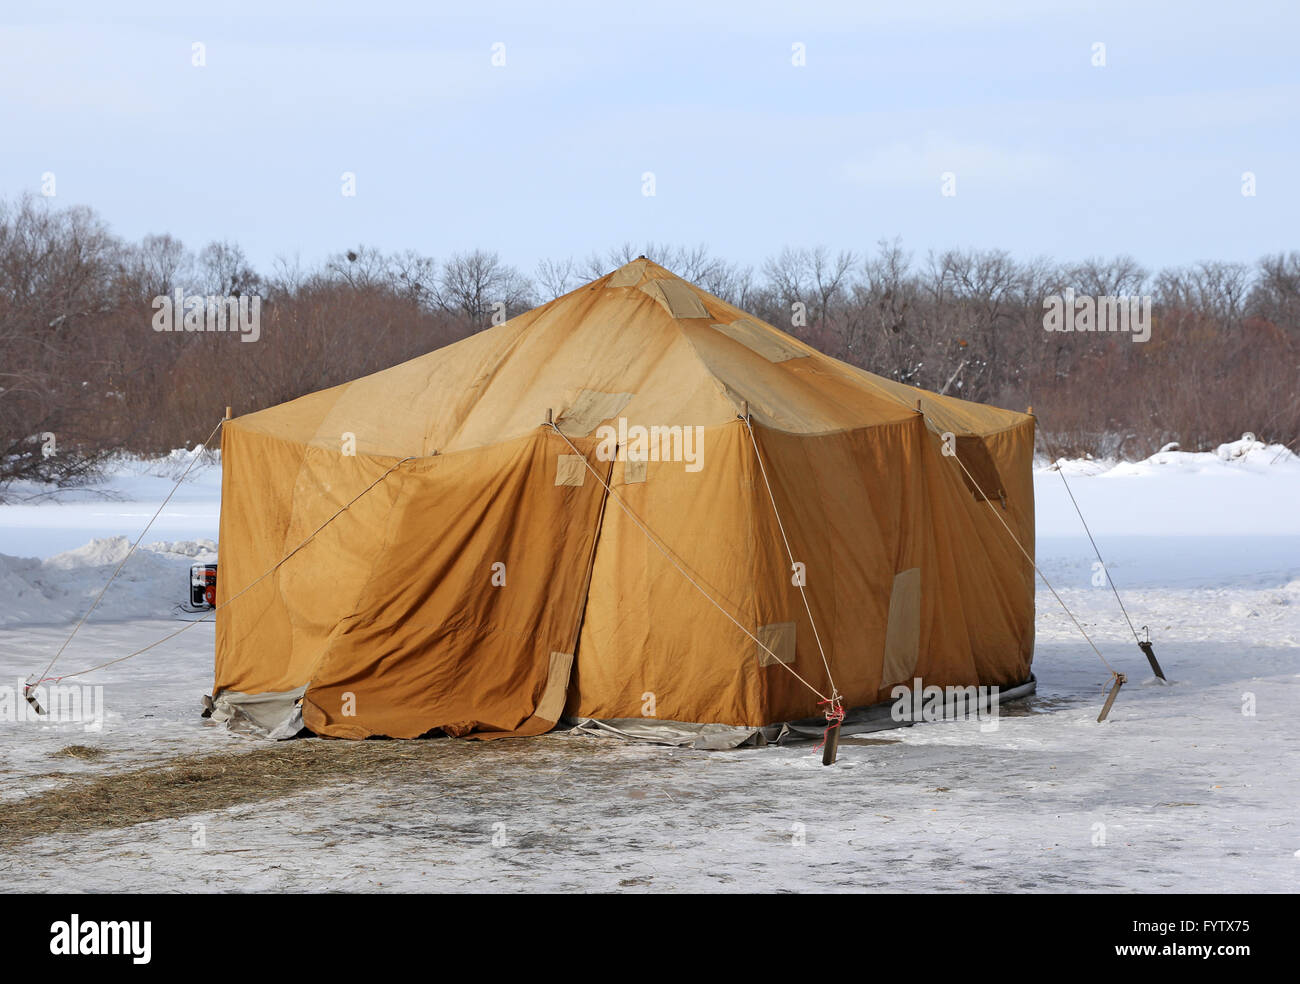 Military khaki tent in the snow polar region in a forest - Stock Image